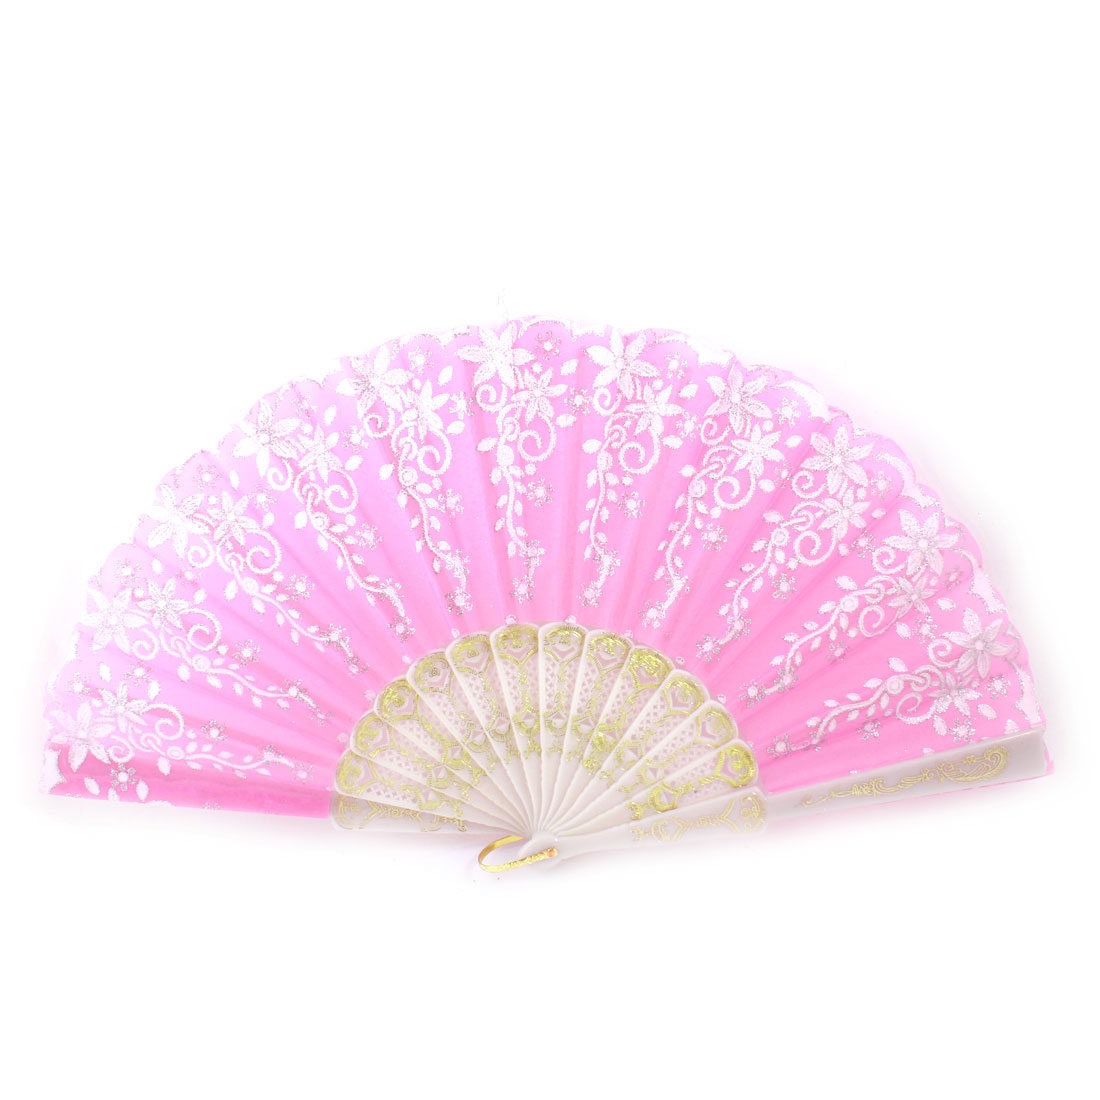 Plastic Frame Silver Tone Glittery Powder Detail Floral Printed Folding Hand Fan Pink White